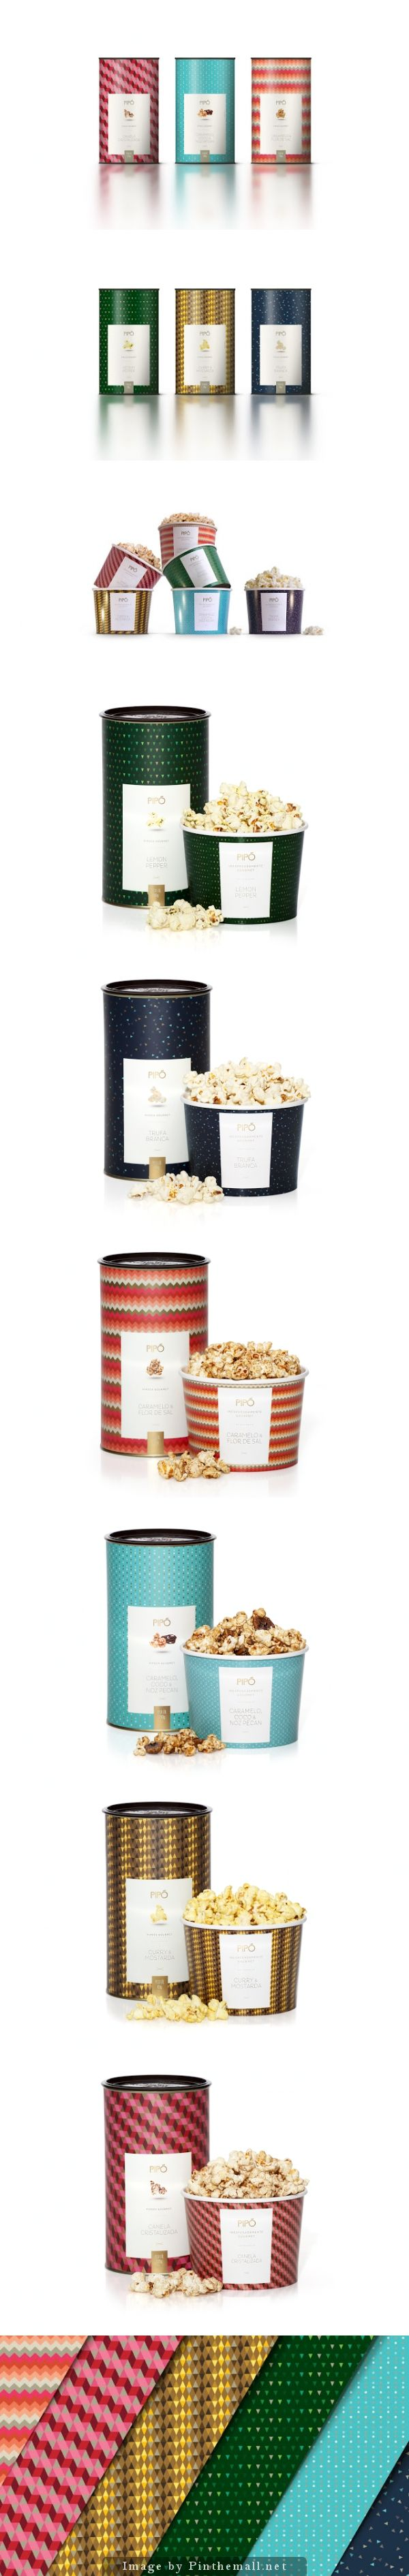 Pipó: The #Popcorn's Reinvention (Concept), Creative Agency: Agência Yo - http://www.packagingoftheworld.com/2014/10/pipo-popcorns-reinvention-concept.html